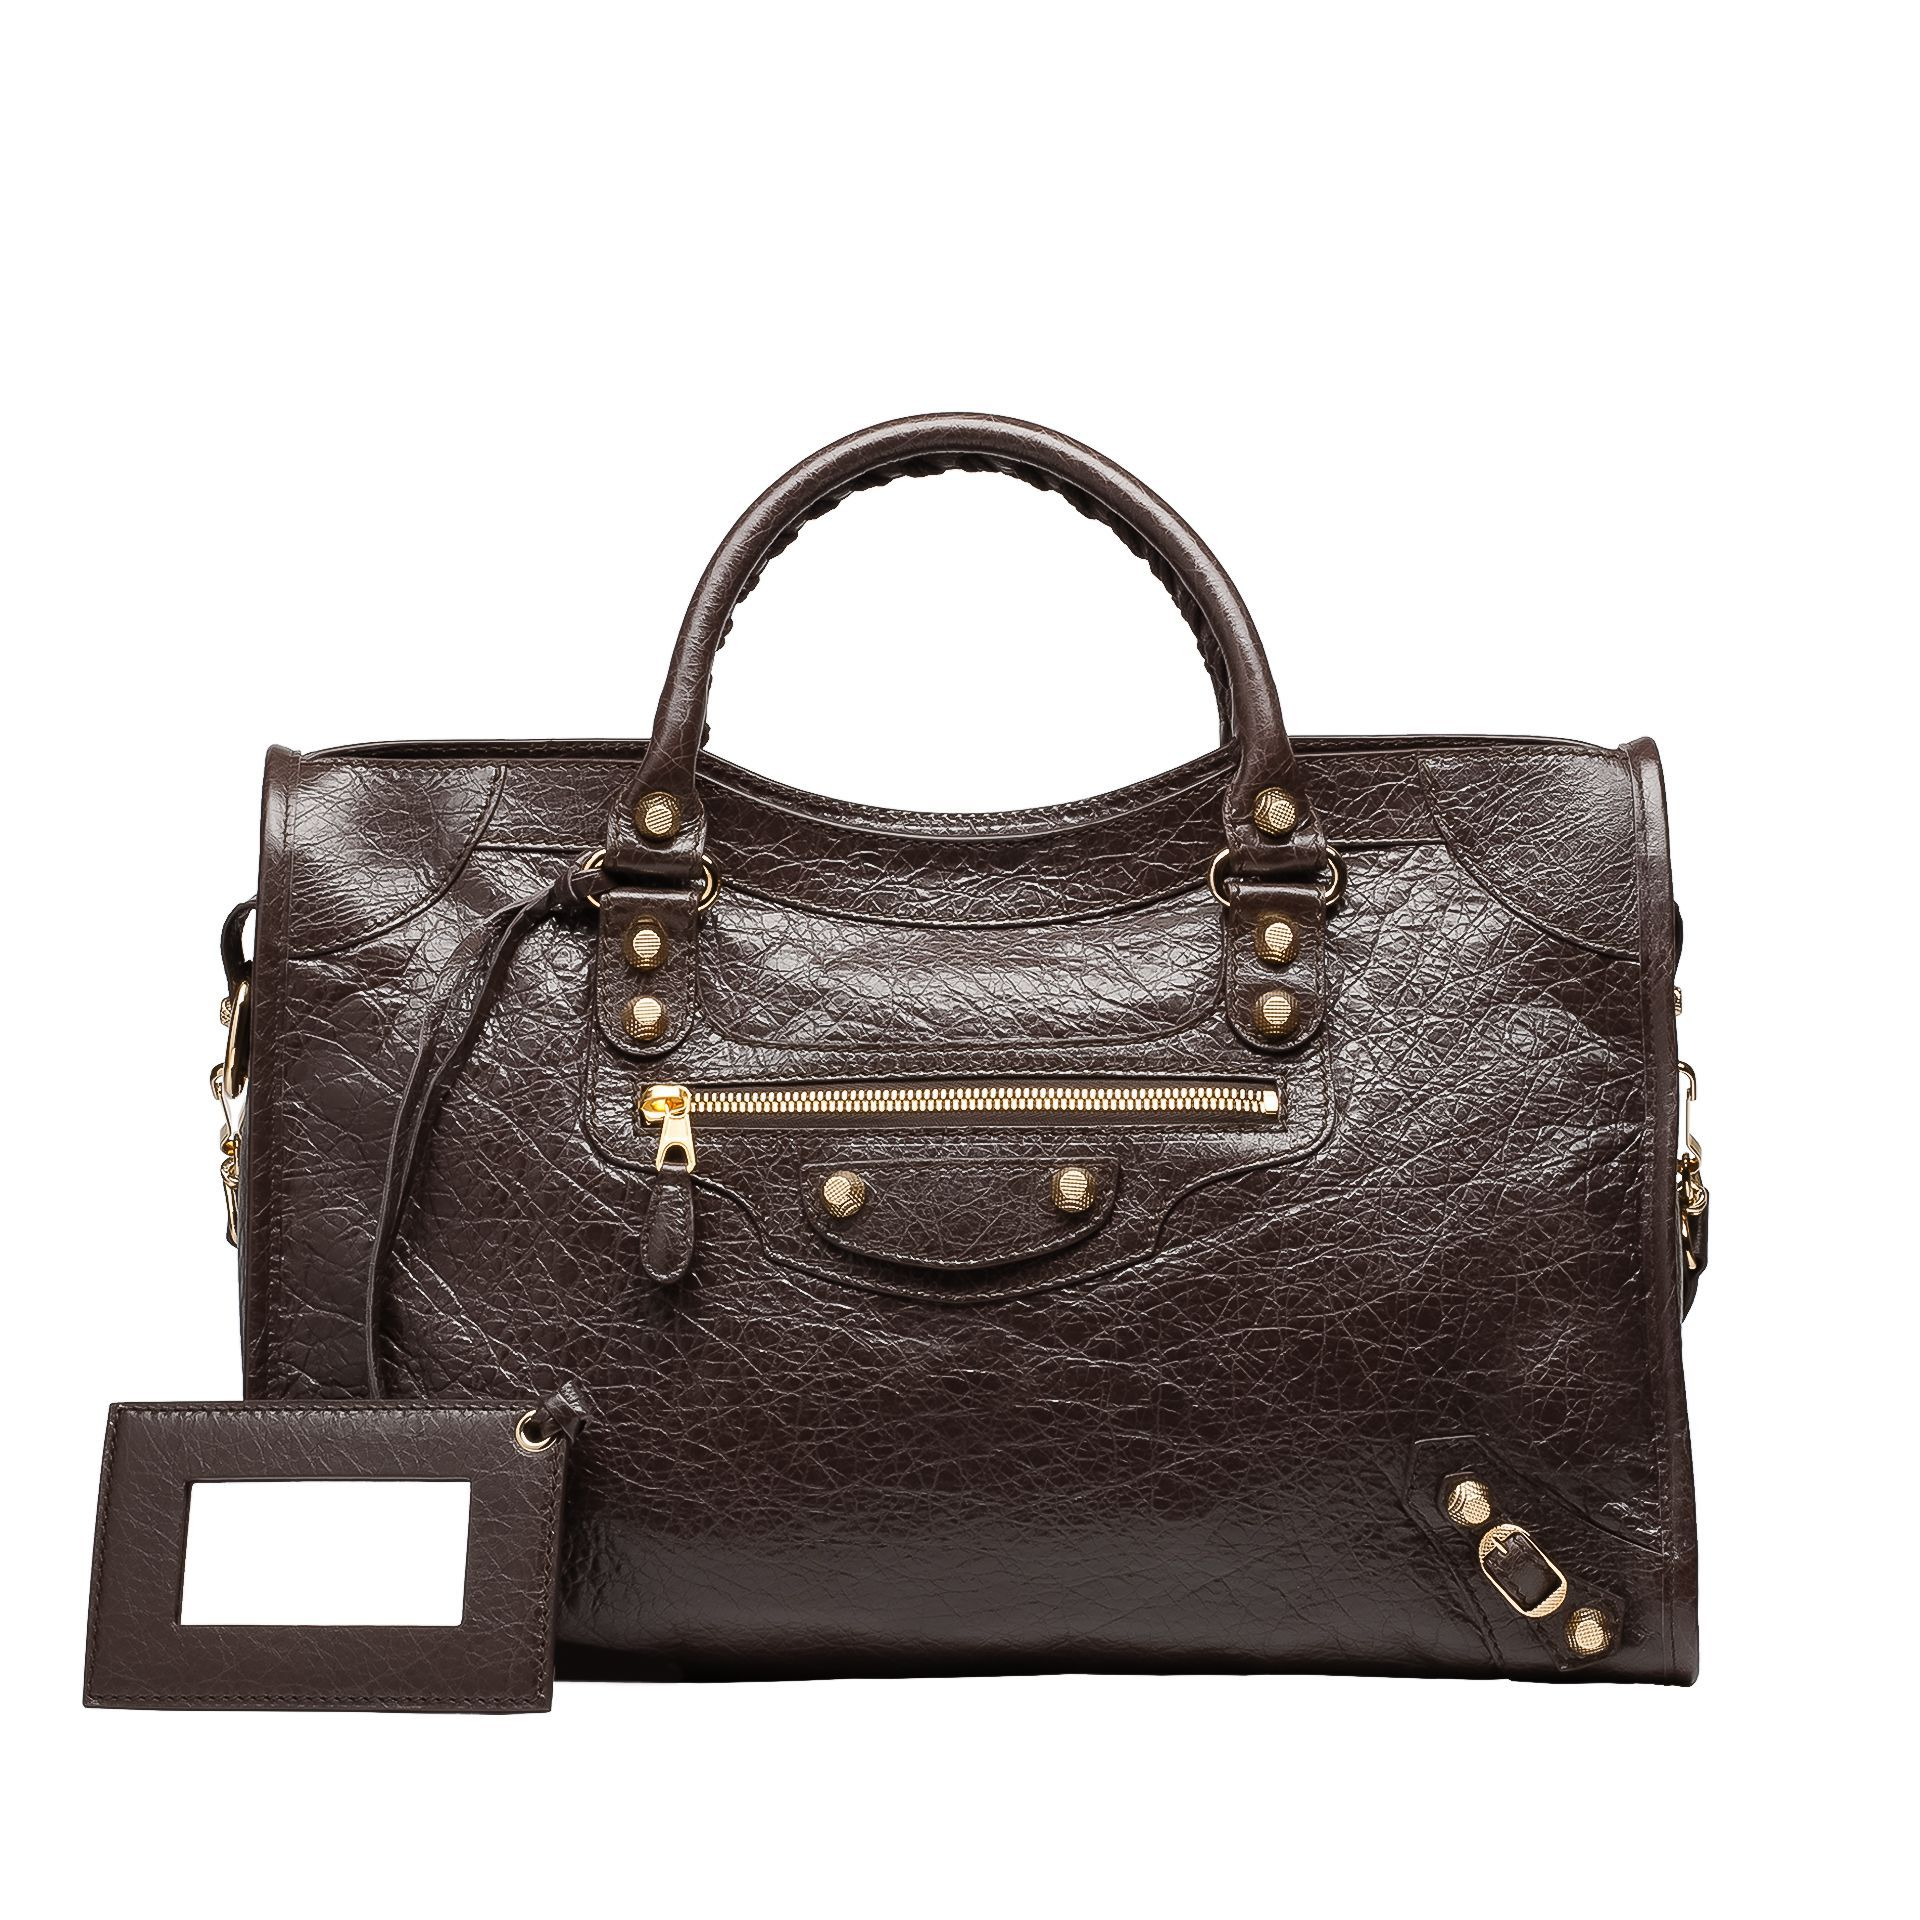 decb20443aae BALENCIAGA GIANT 12 GOLD CITY CHARBON Medium sized lambskin hand carry and  shoulder bag with